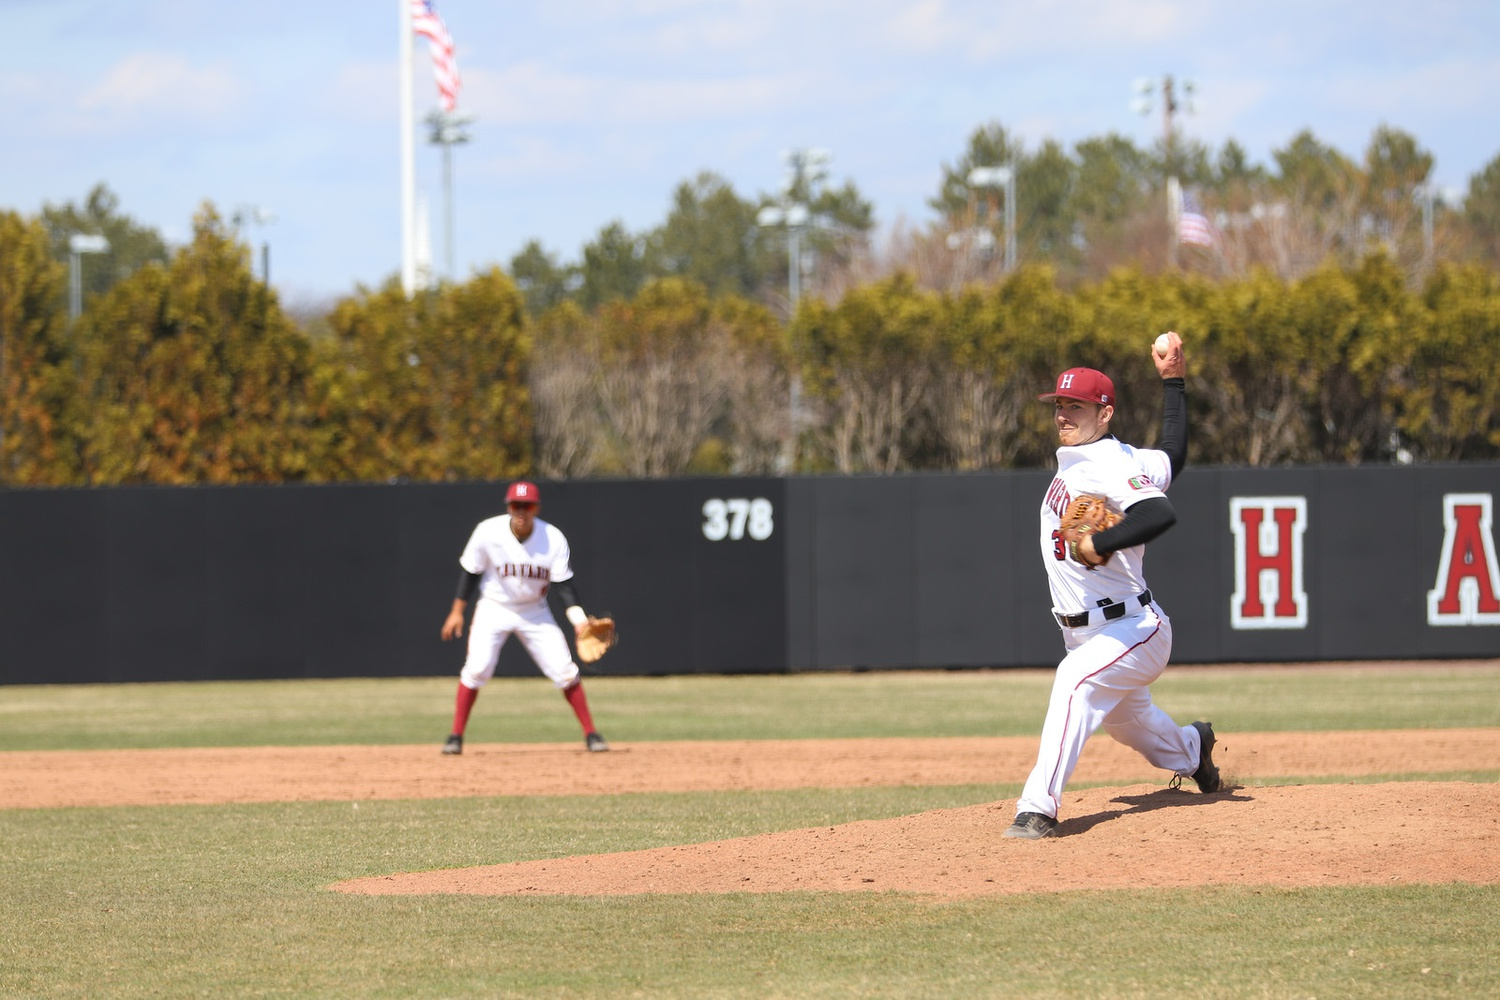 Junior Hunter Bigge has excelled as a two-way player for the Crimson this season. The righty has compiled a 5-1 record on the mound, and a .291 average at the plate